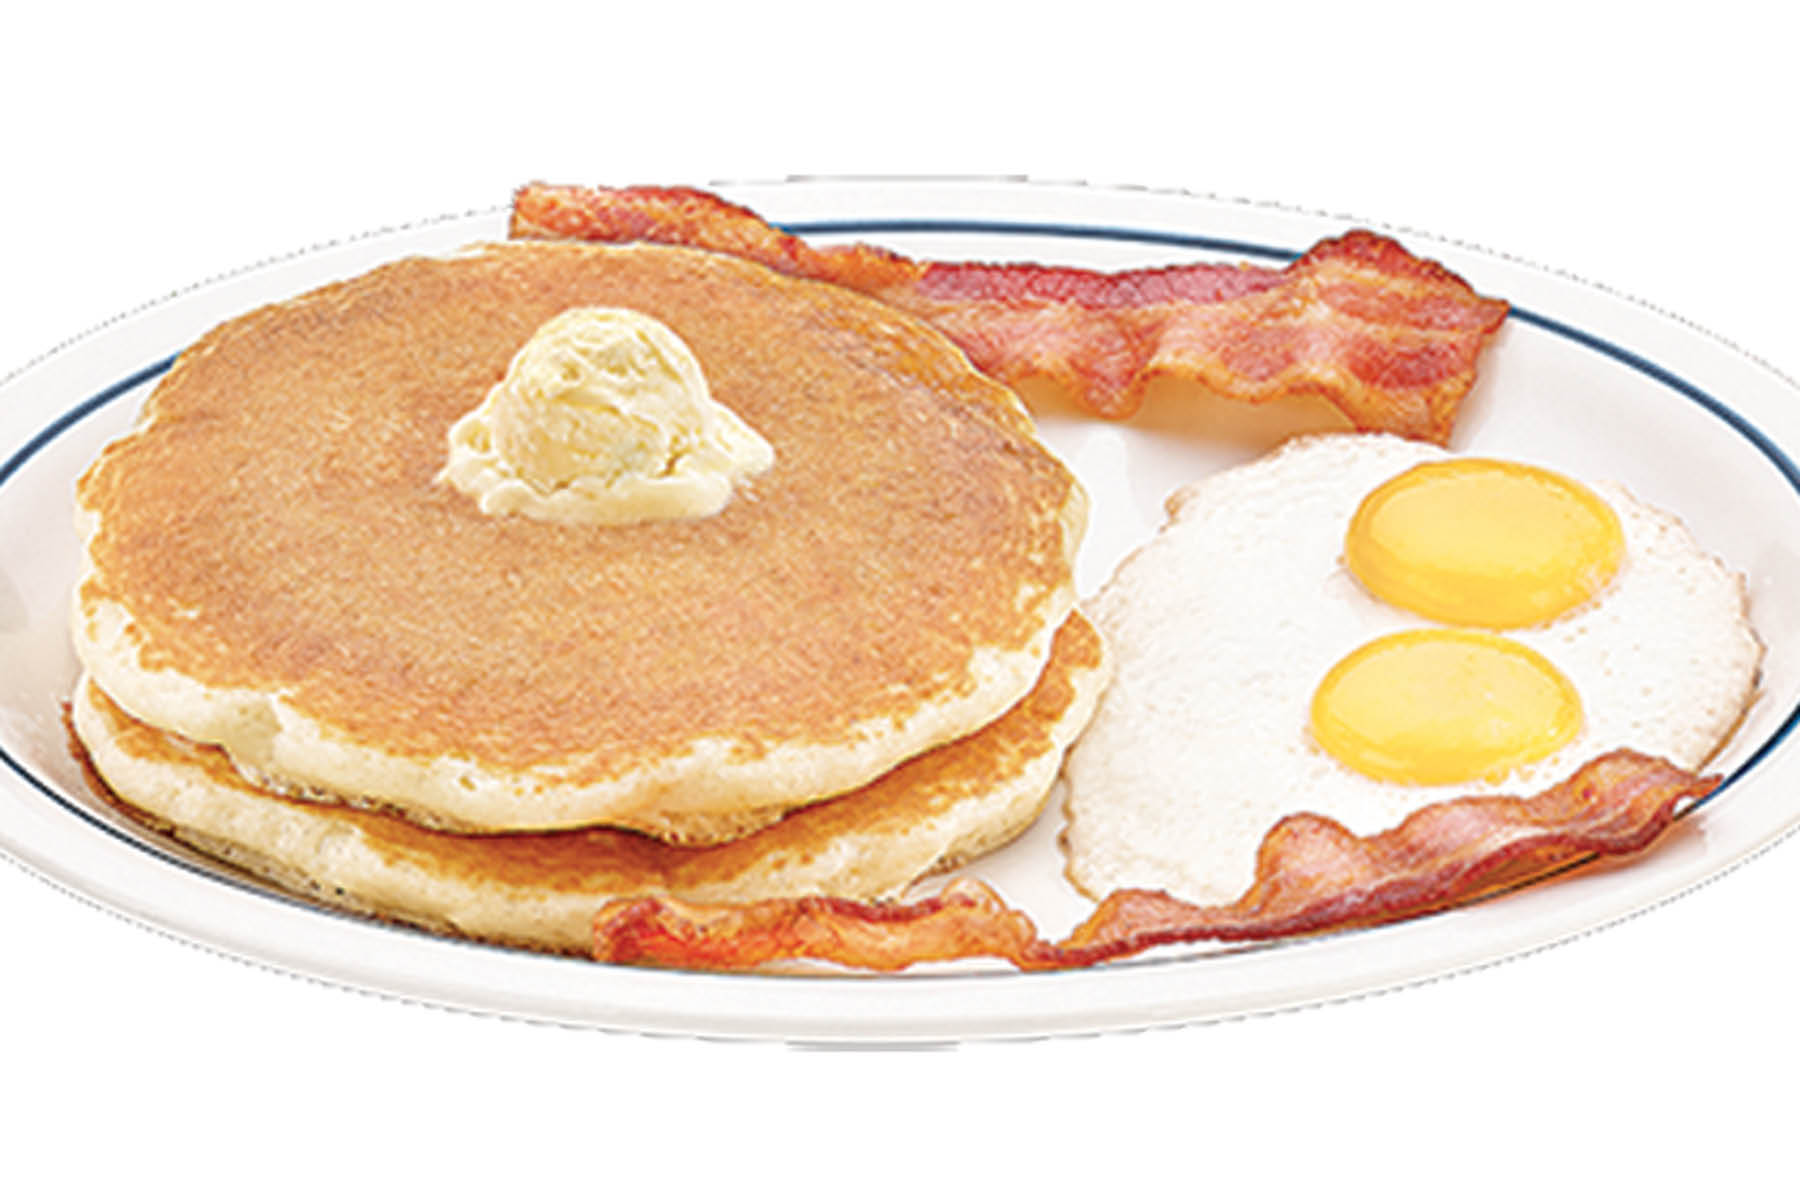 Senior Menu, Eggs, Pancakes, Breakfast, Lunch, Dinner, Crepes, Waffles, Biscuits, Bacon, Sausage, Omlets; la plata 7 prince frederick, md